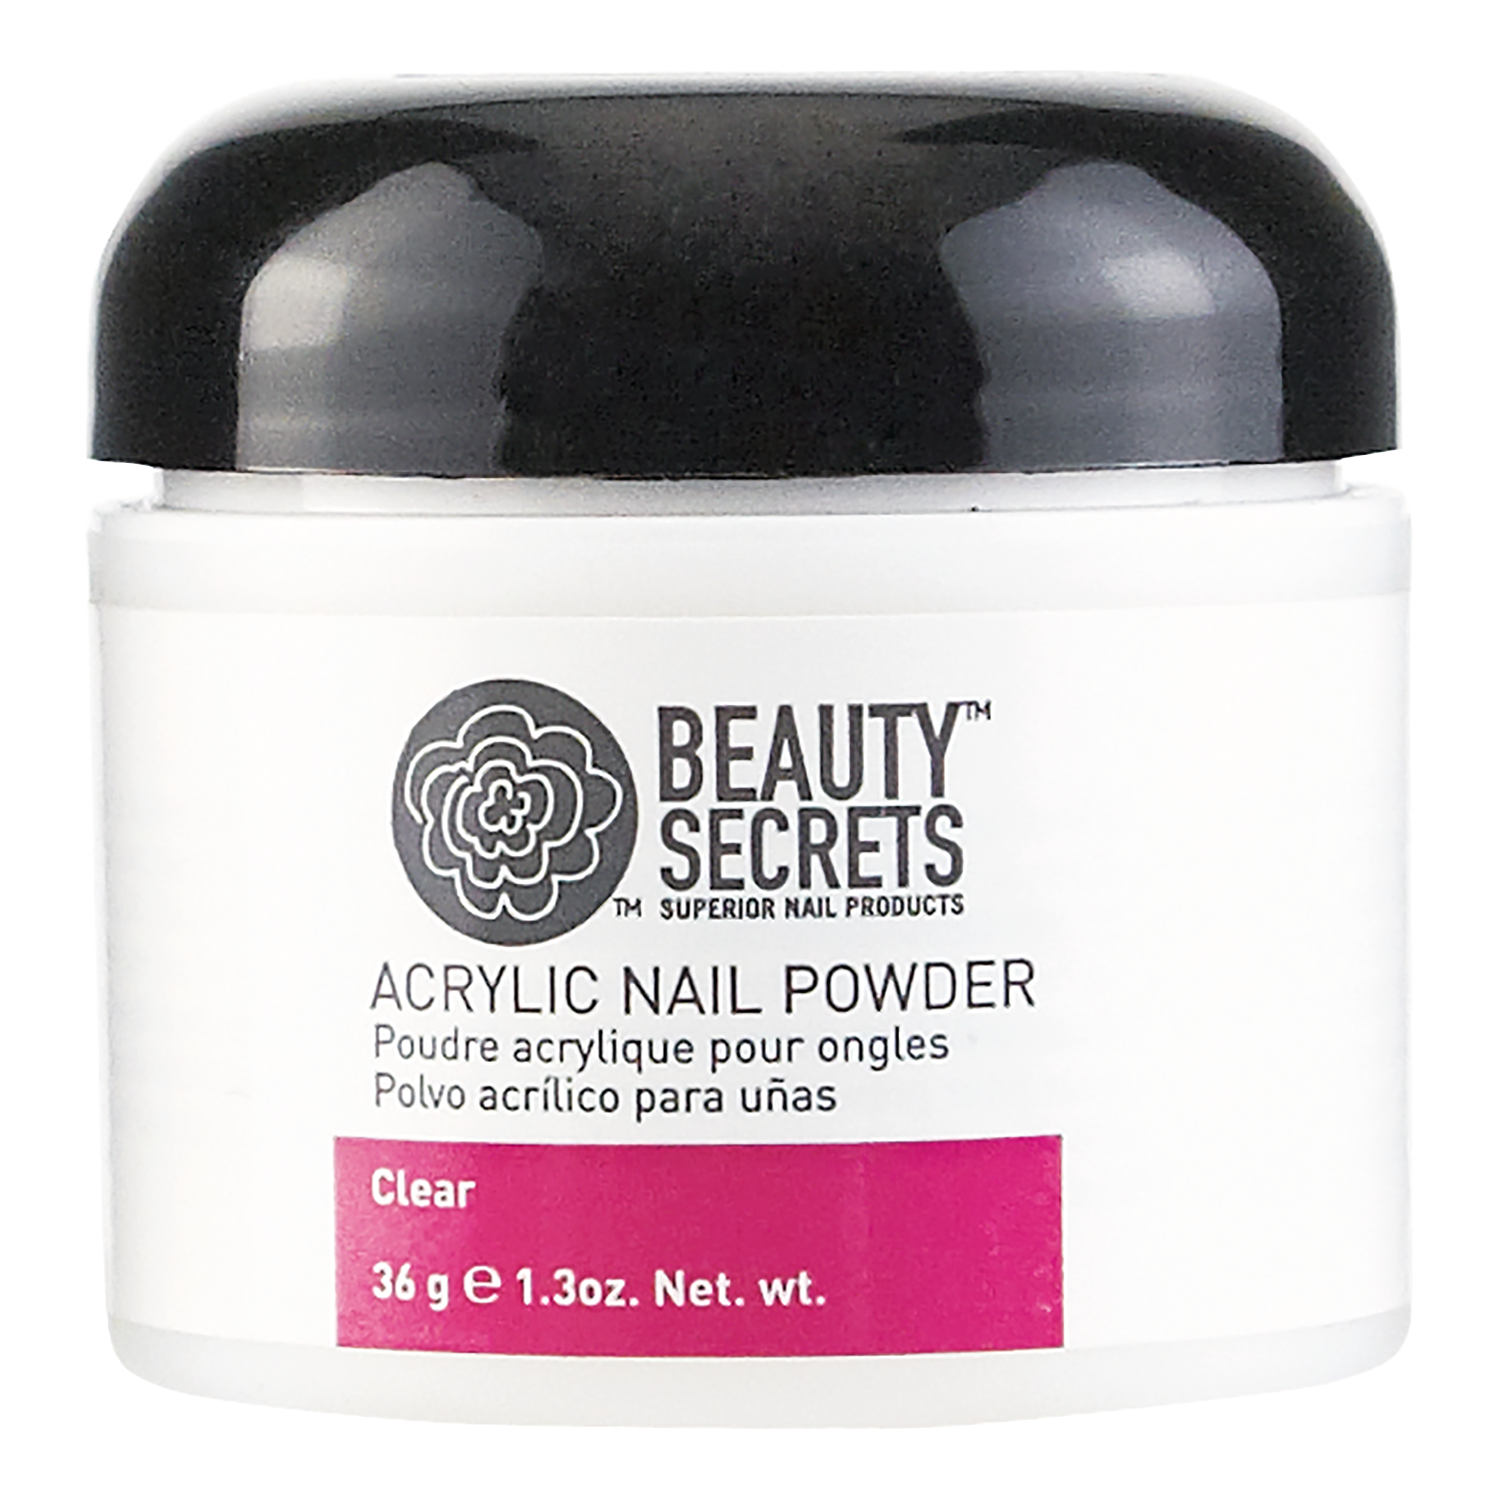 Beauty Secrets Clear Acrylic Nail Powder